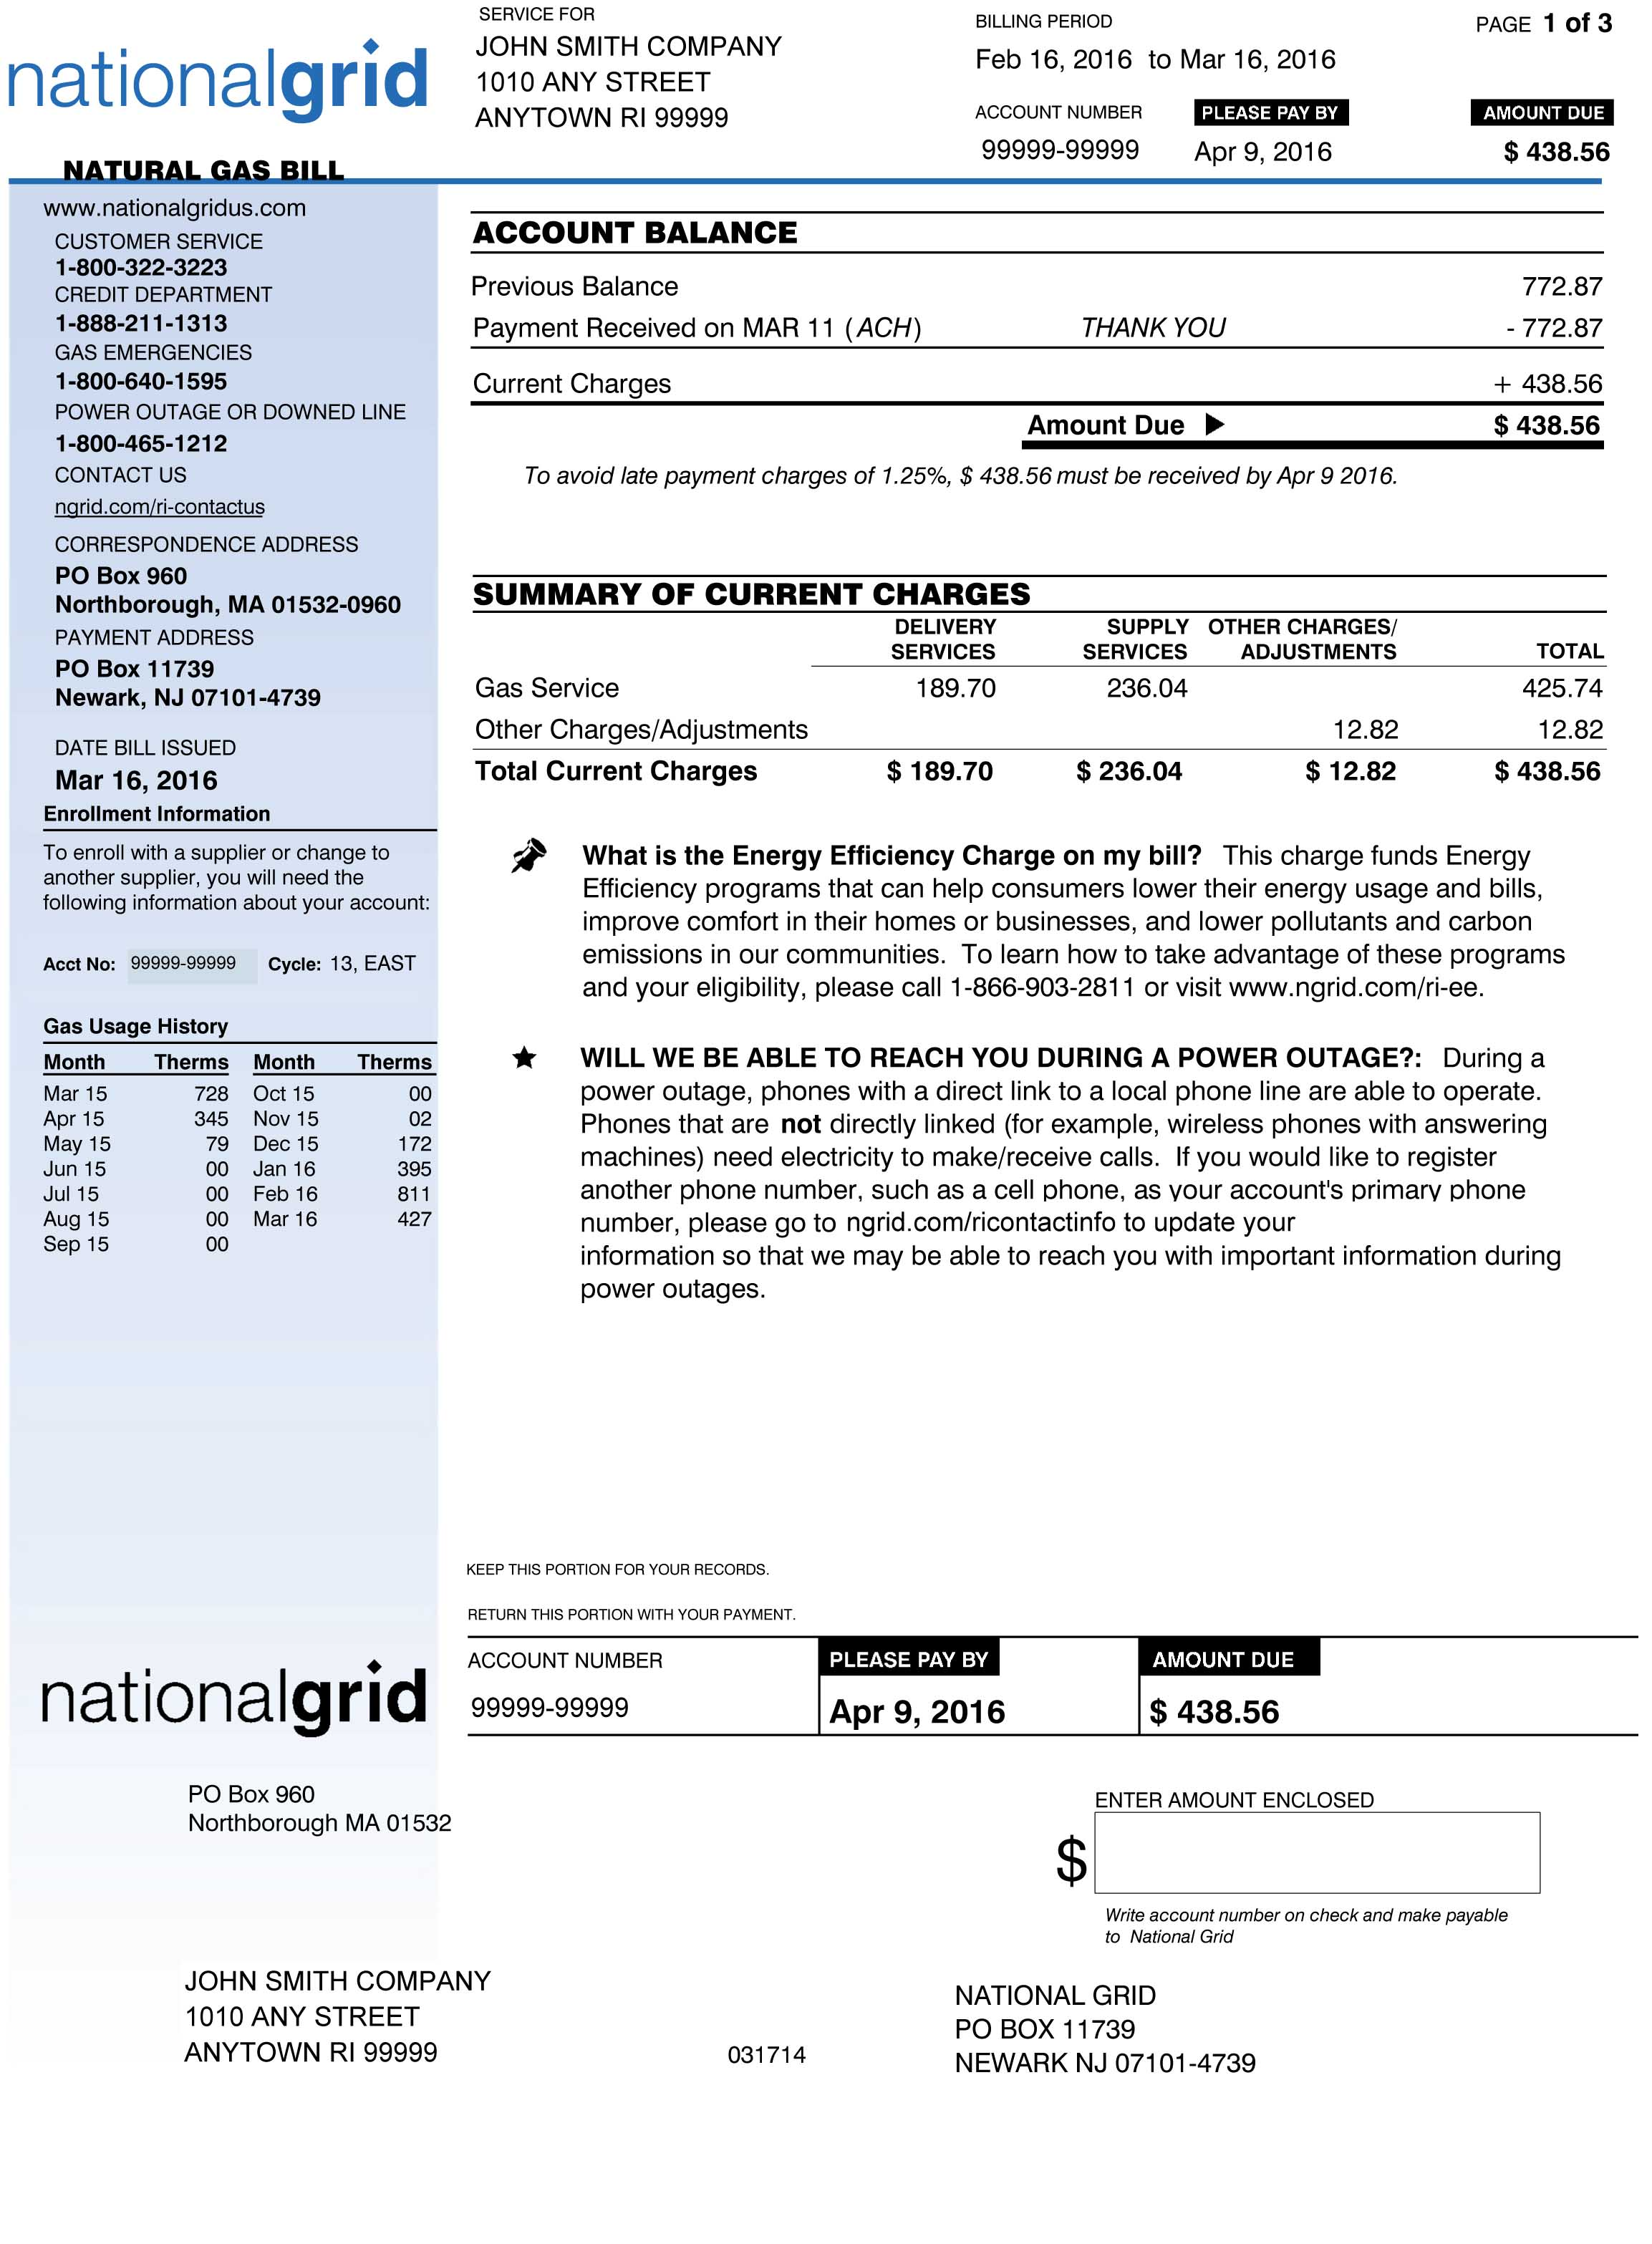 RI Sample Gas Bill Page 1